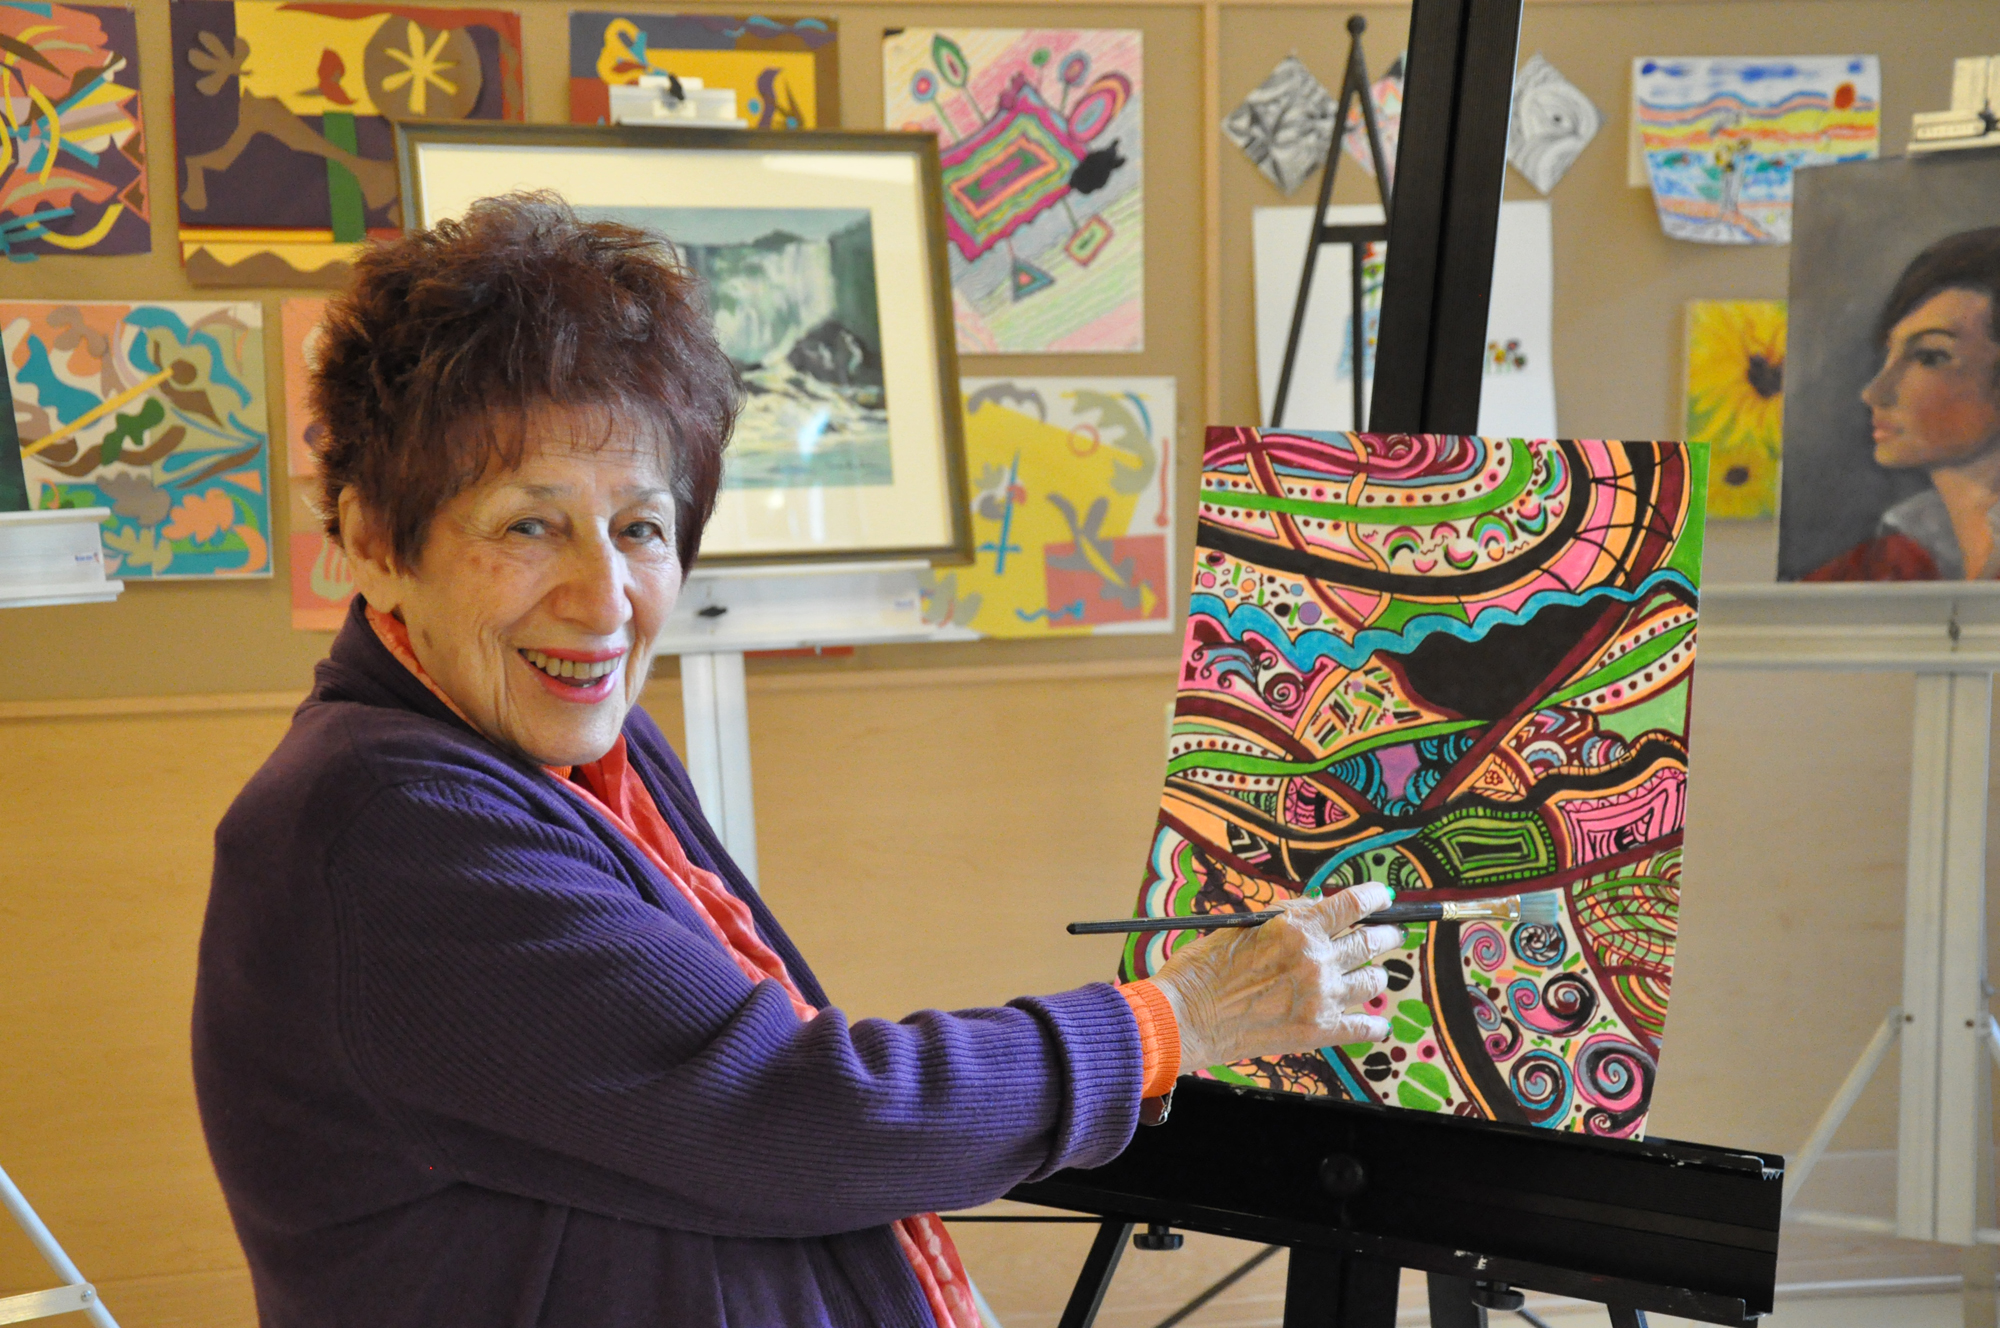 At 91, Bethesda painter lands first art show